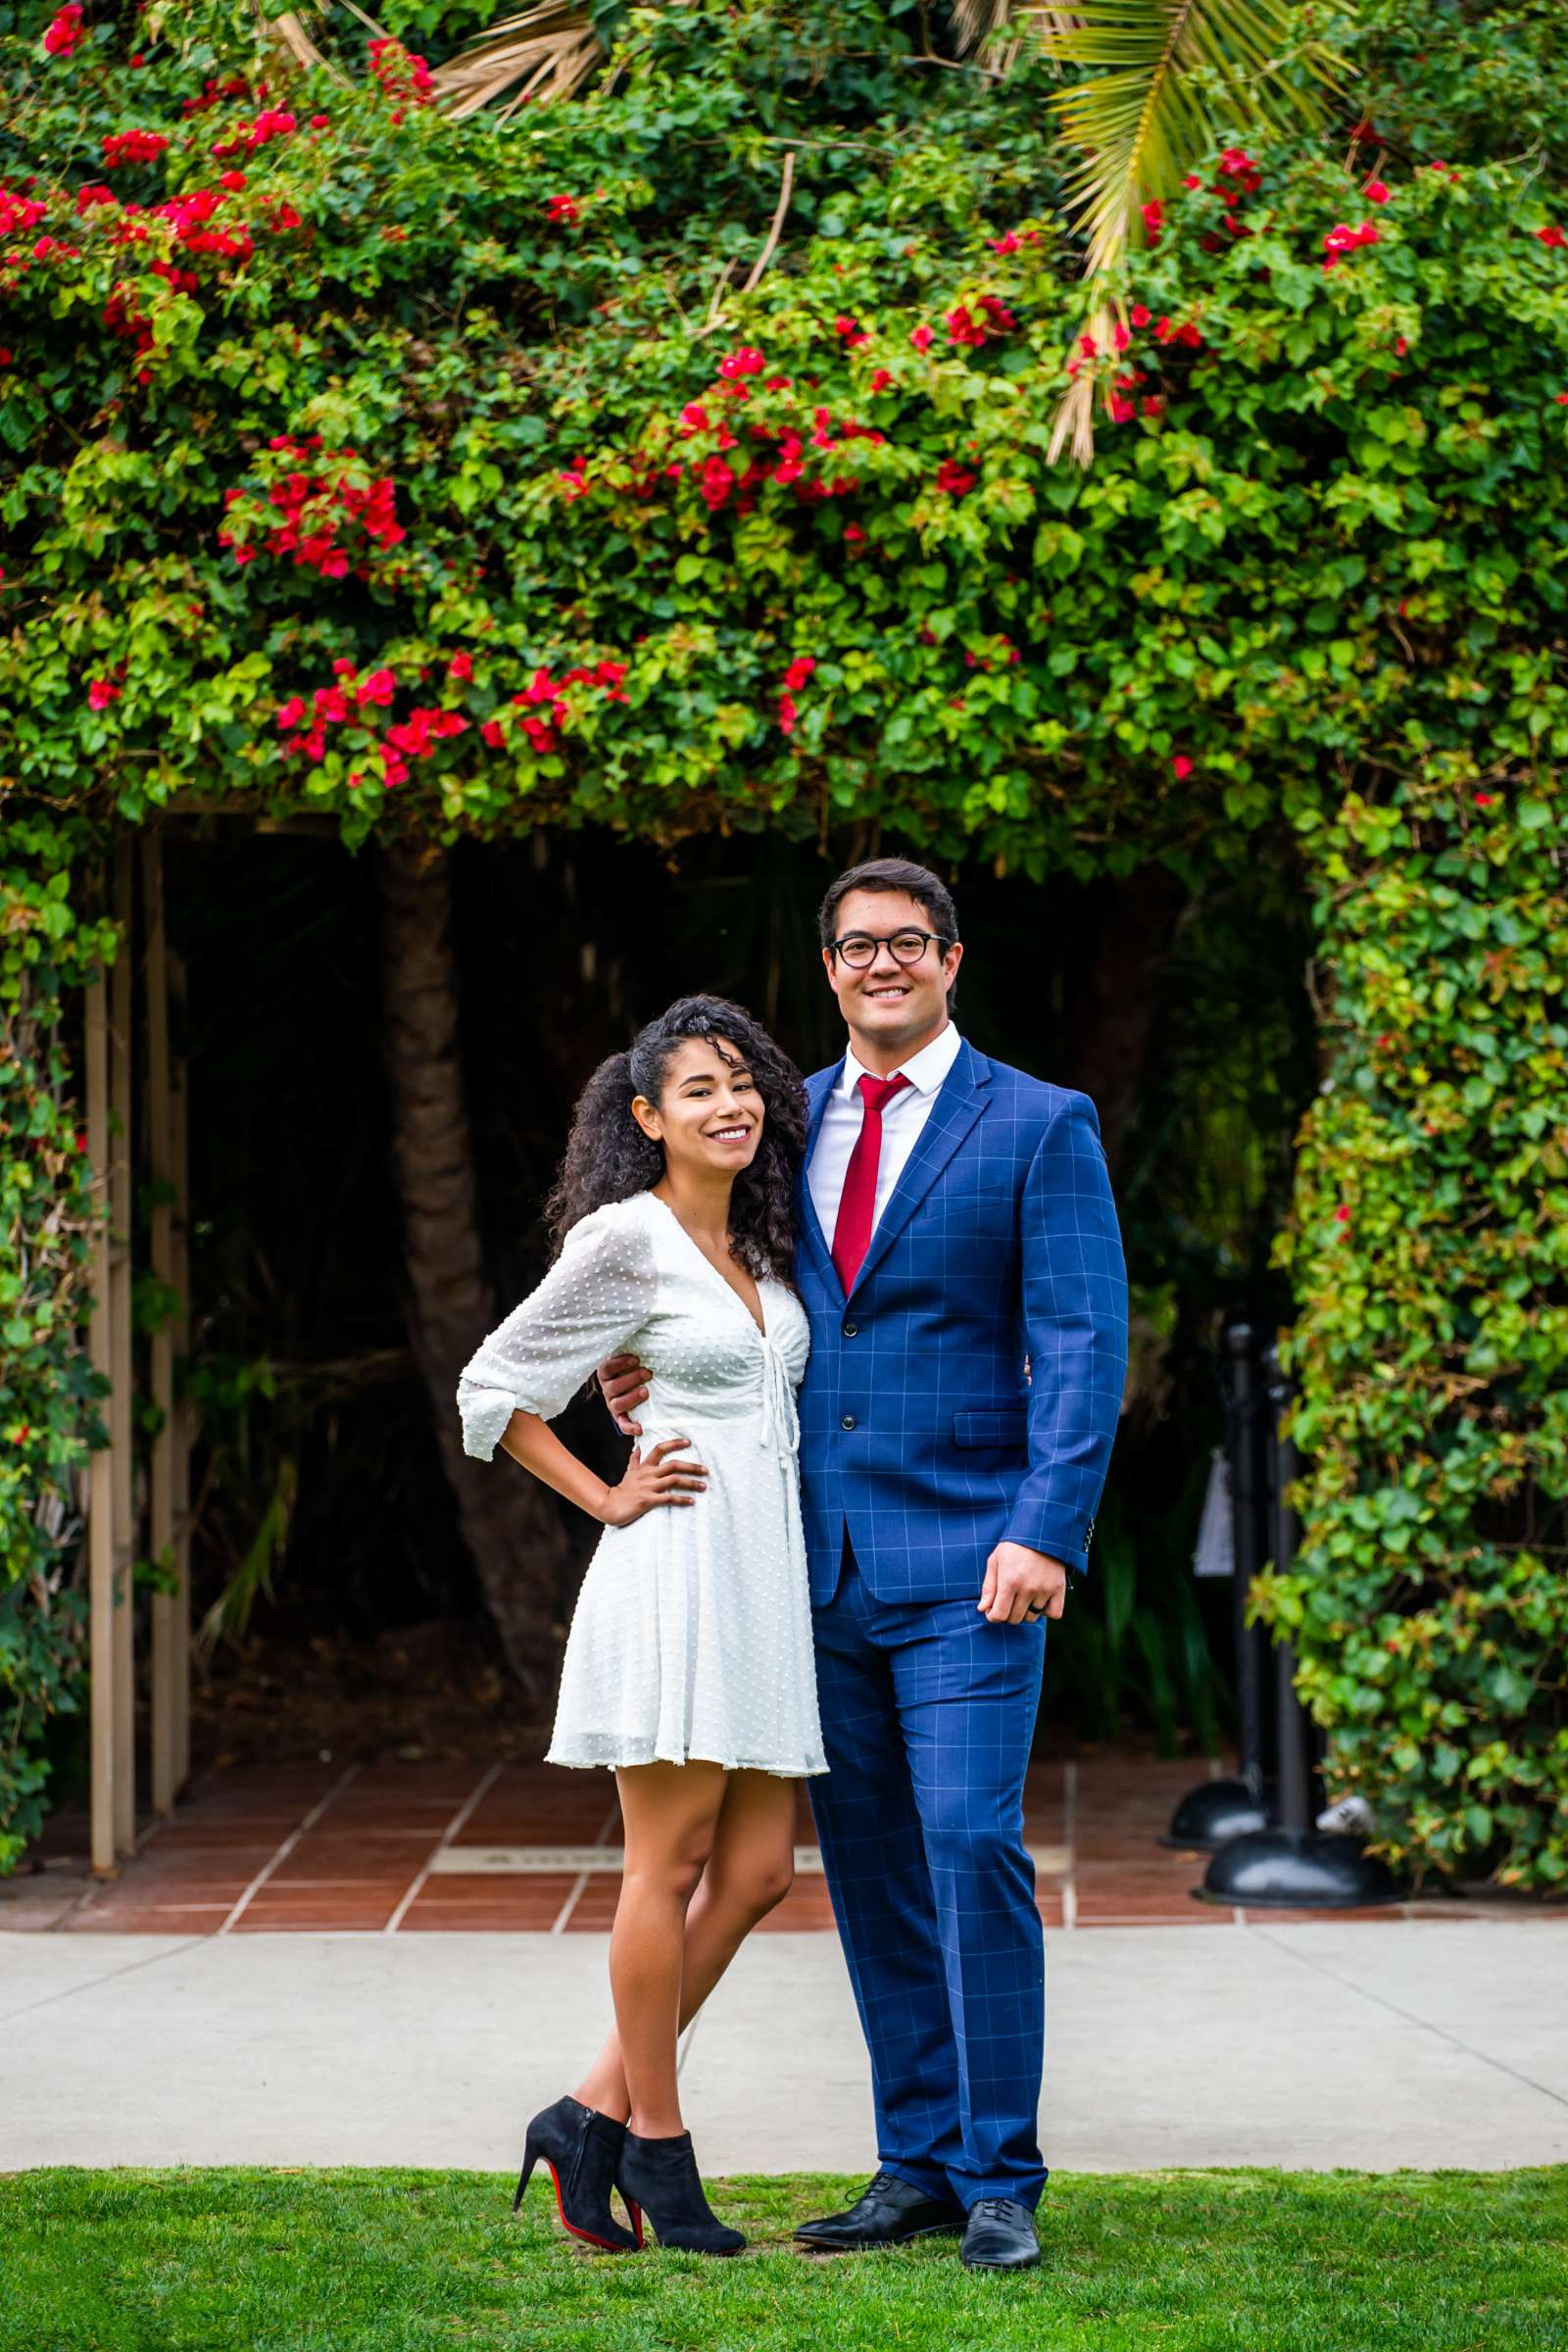 San Diego Courthouse Event, Gabriela and Peter Wedding Event Photo #622816 by True Photography